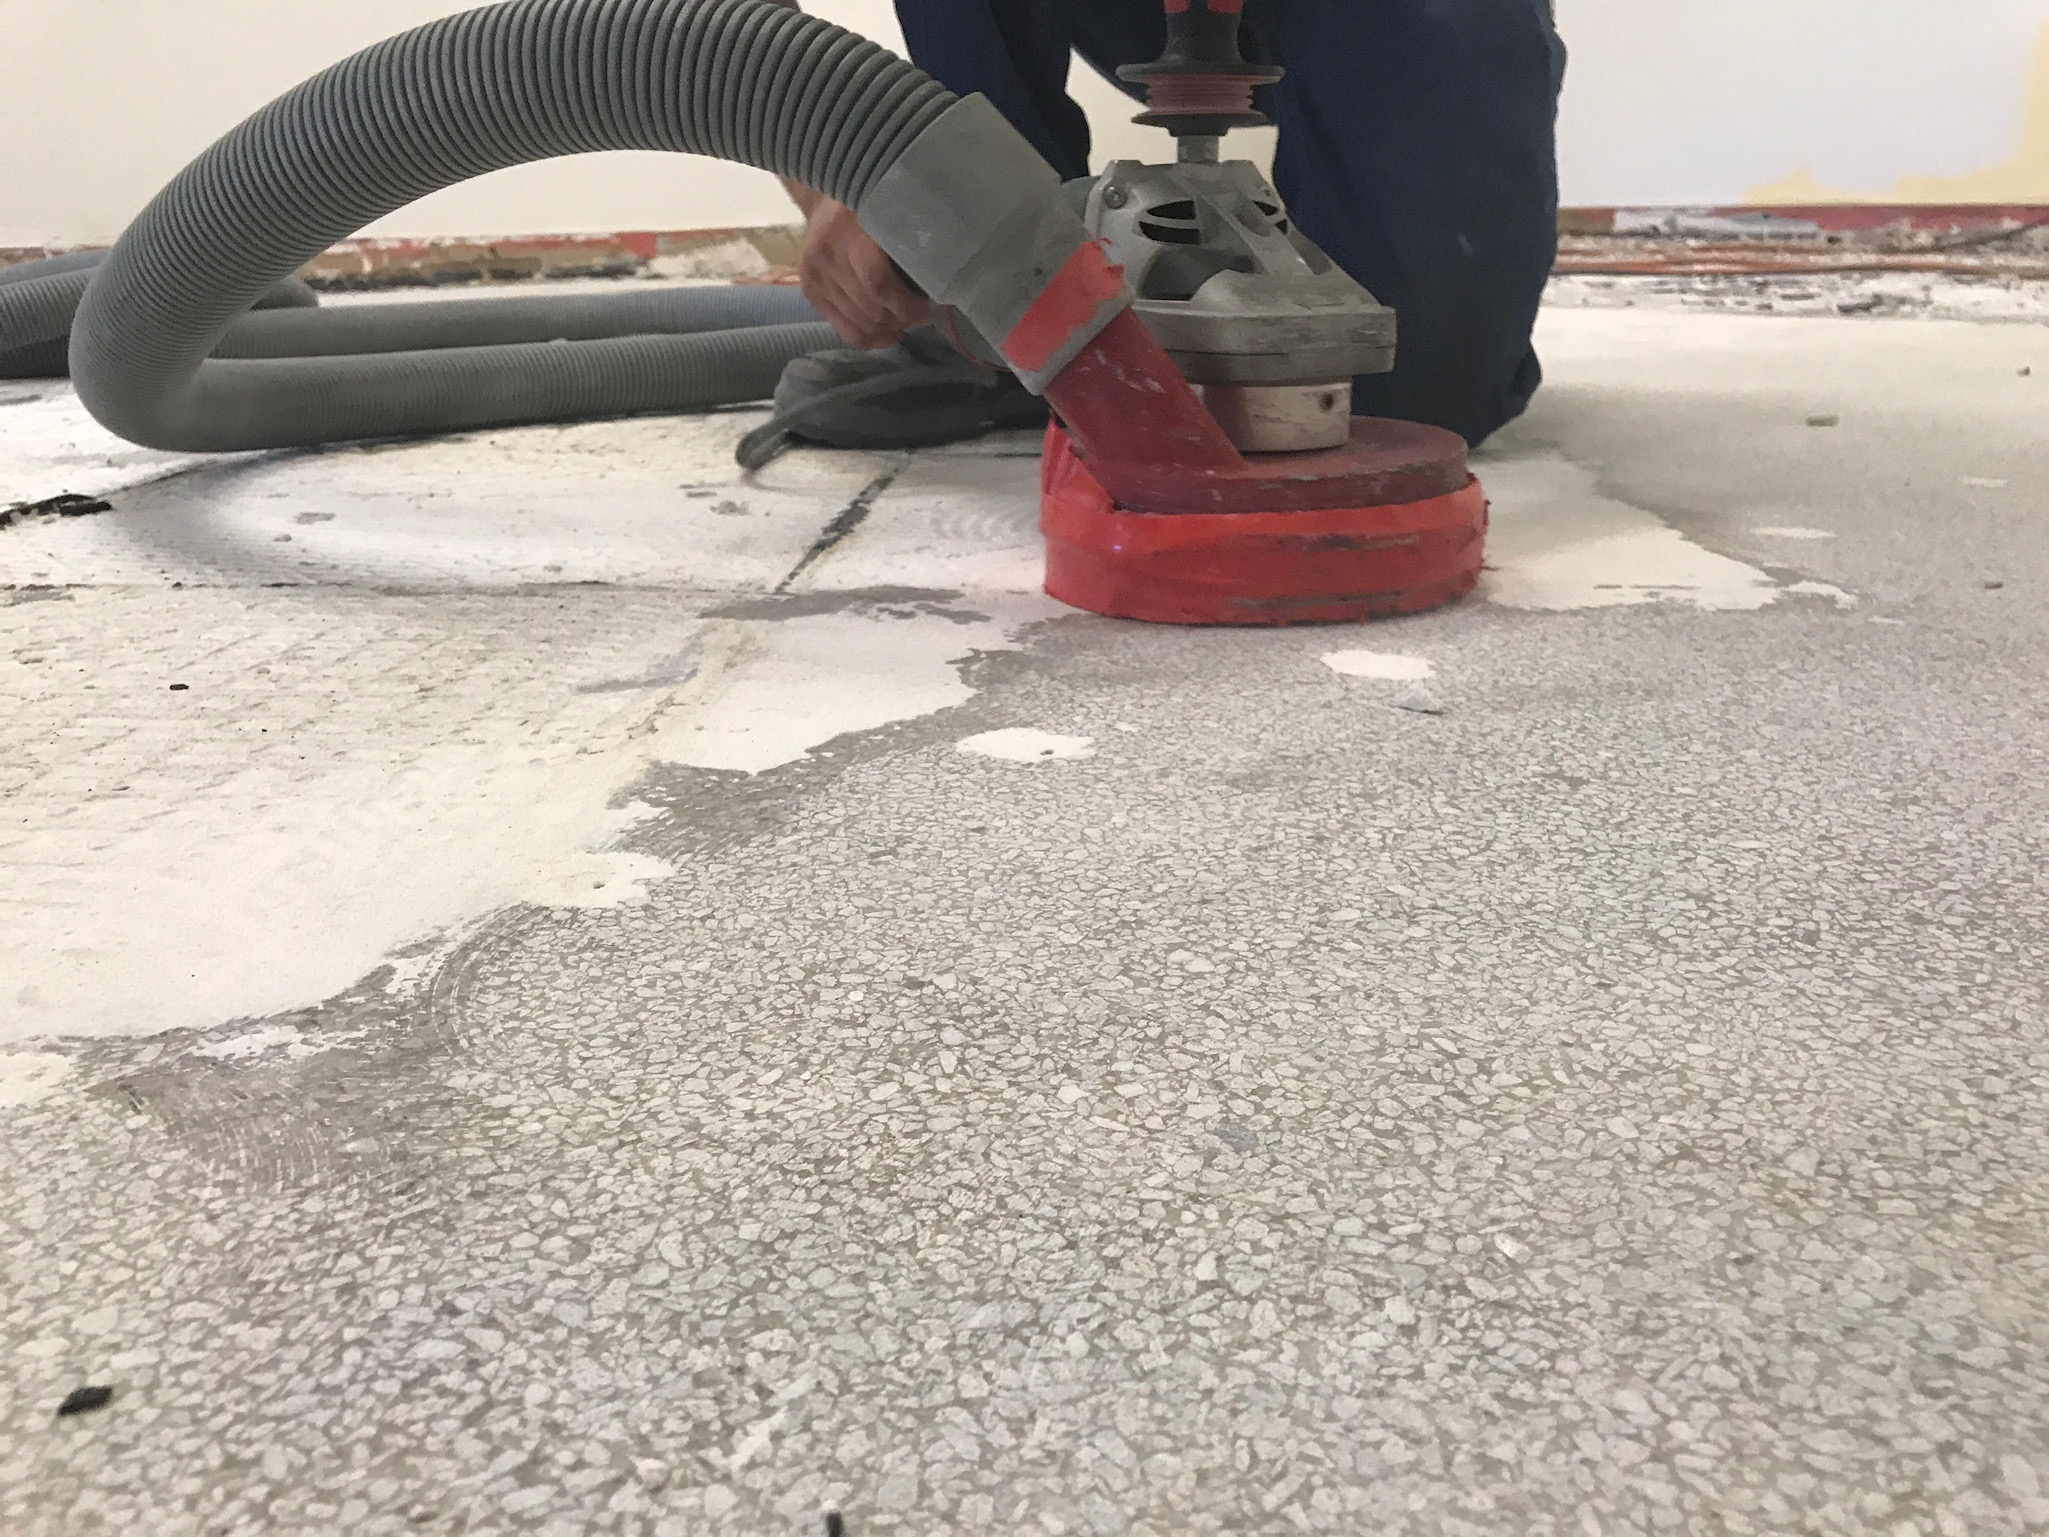 Close-up image of concrete sub-floor being buffed smooth